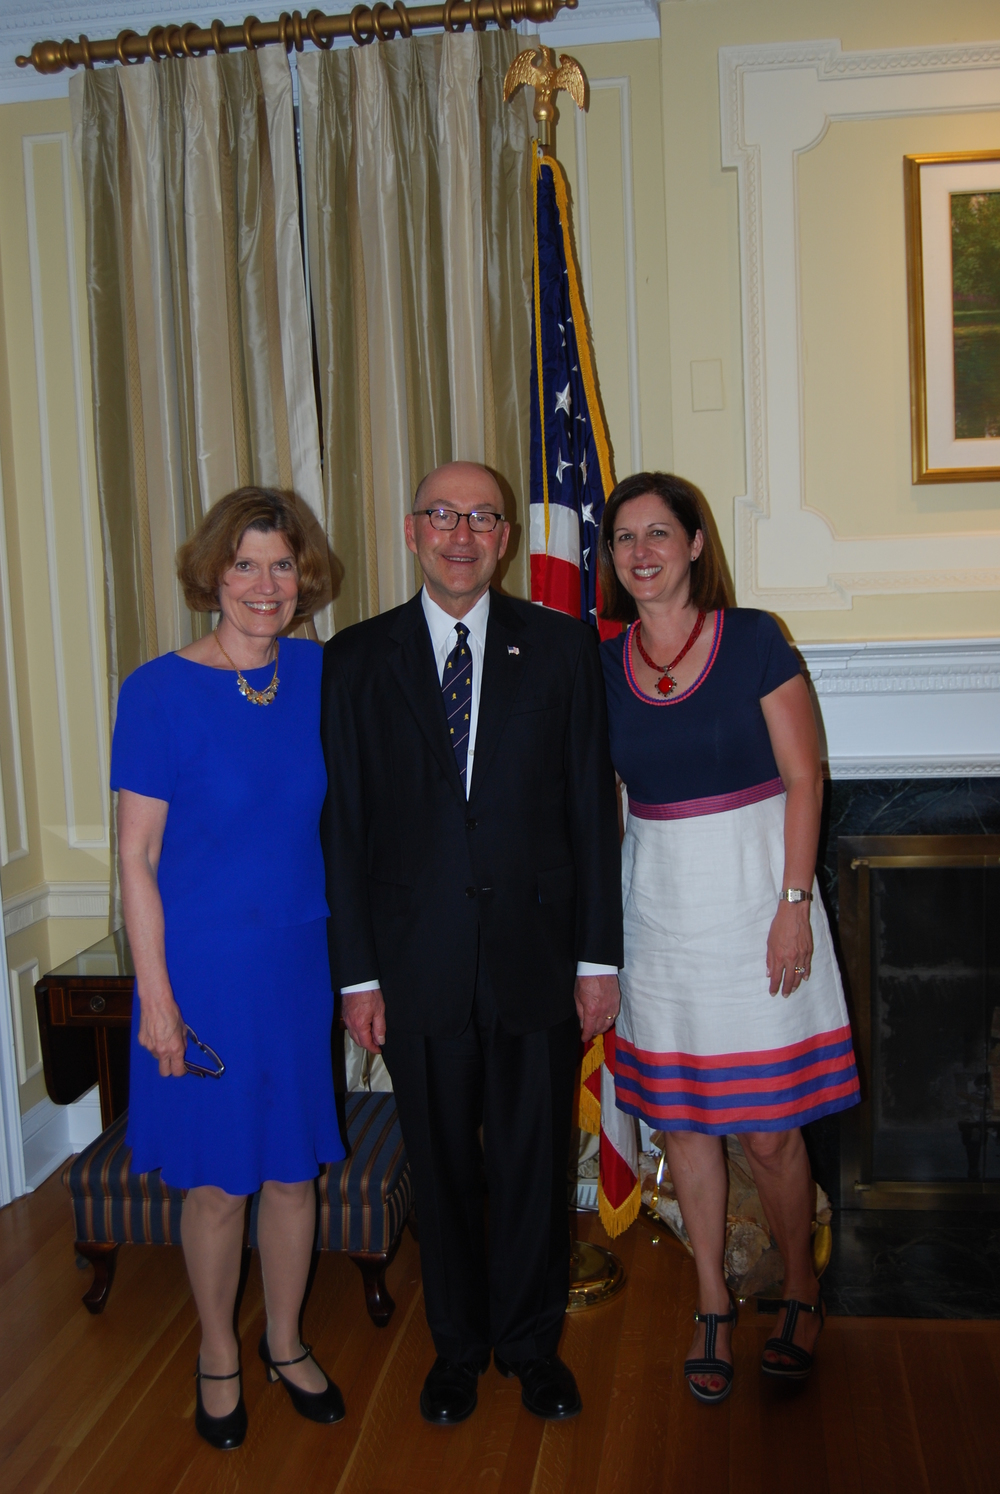 Lynne Olson with Ambassador David Jacobson and Mrs. Julie Jacobson - I